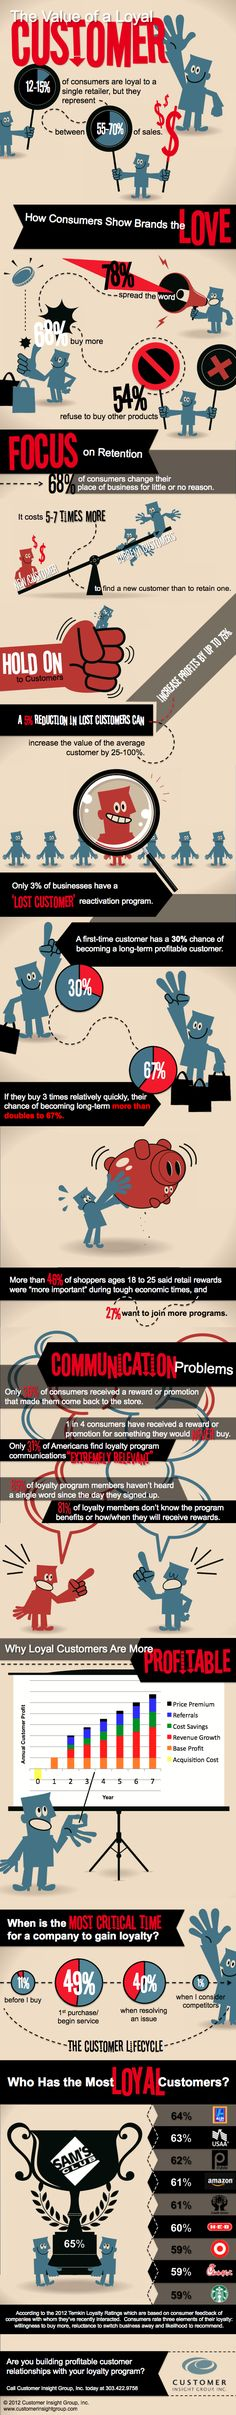 The value of a loyal customer. Useful #infographic